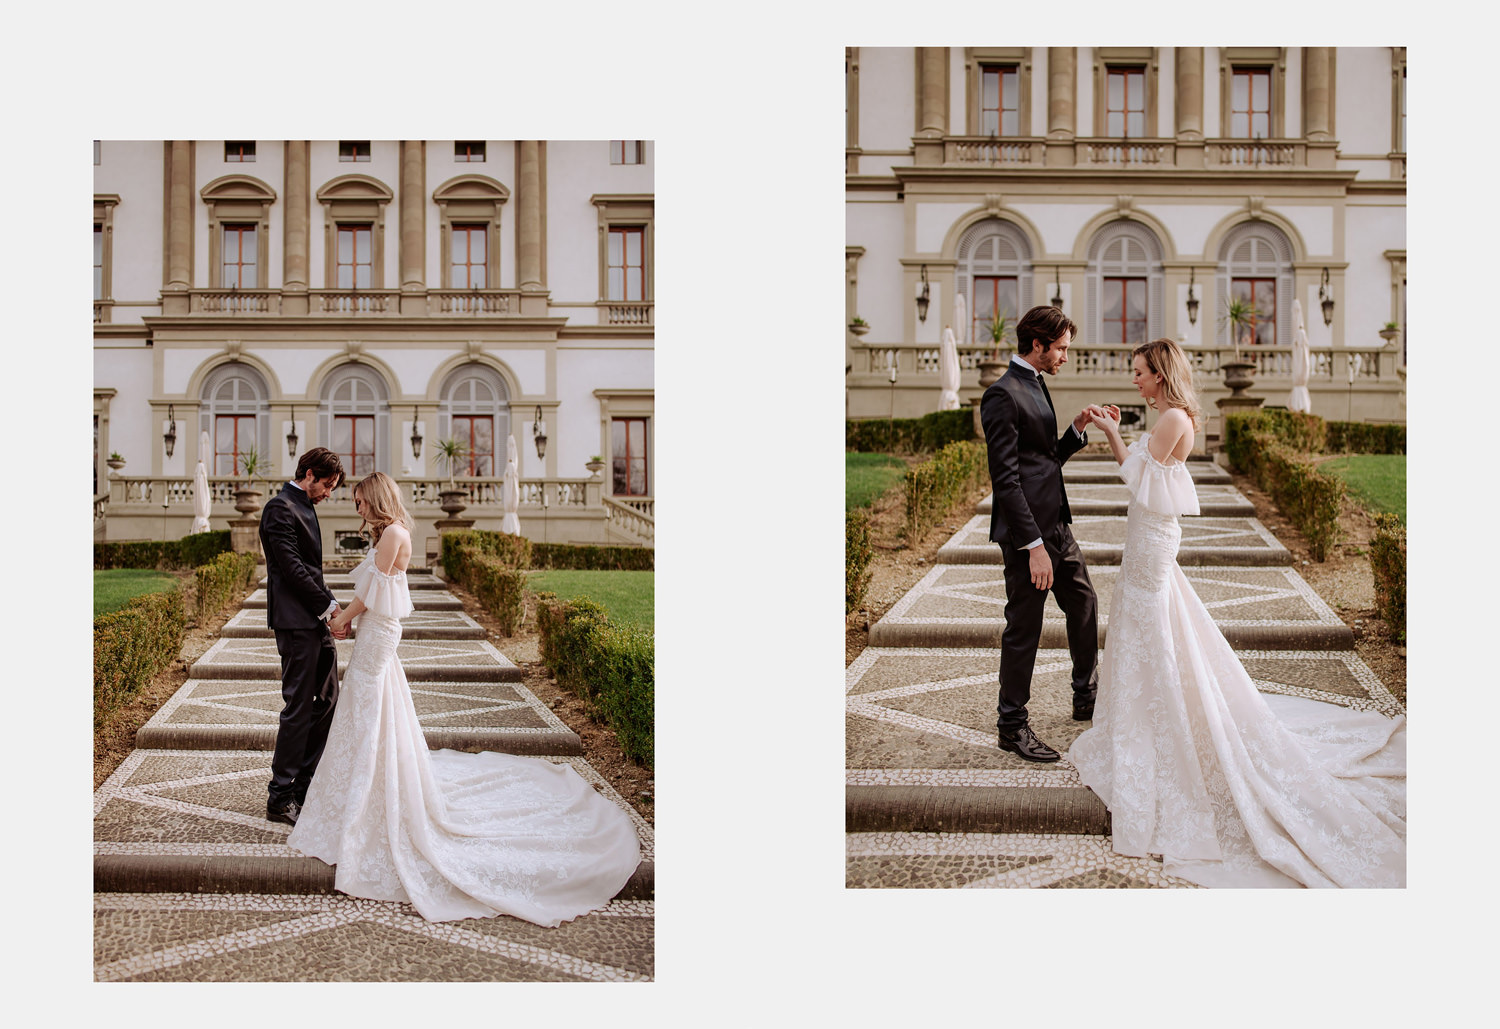 florence-elegant-wedding-photography-Villa-Cora-elopement-ceremo